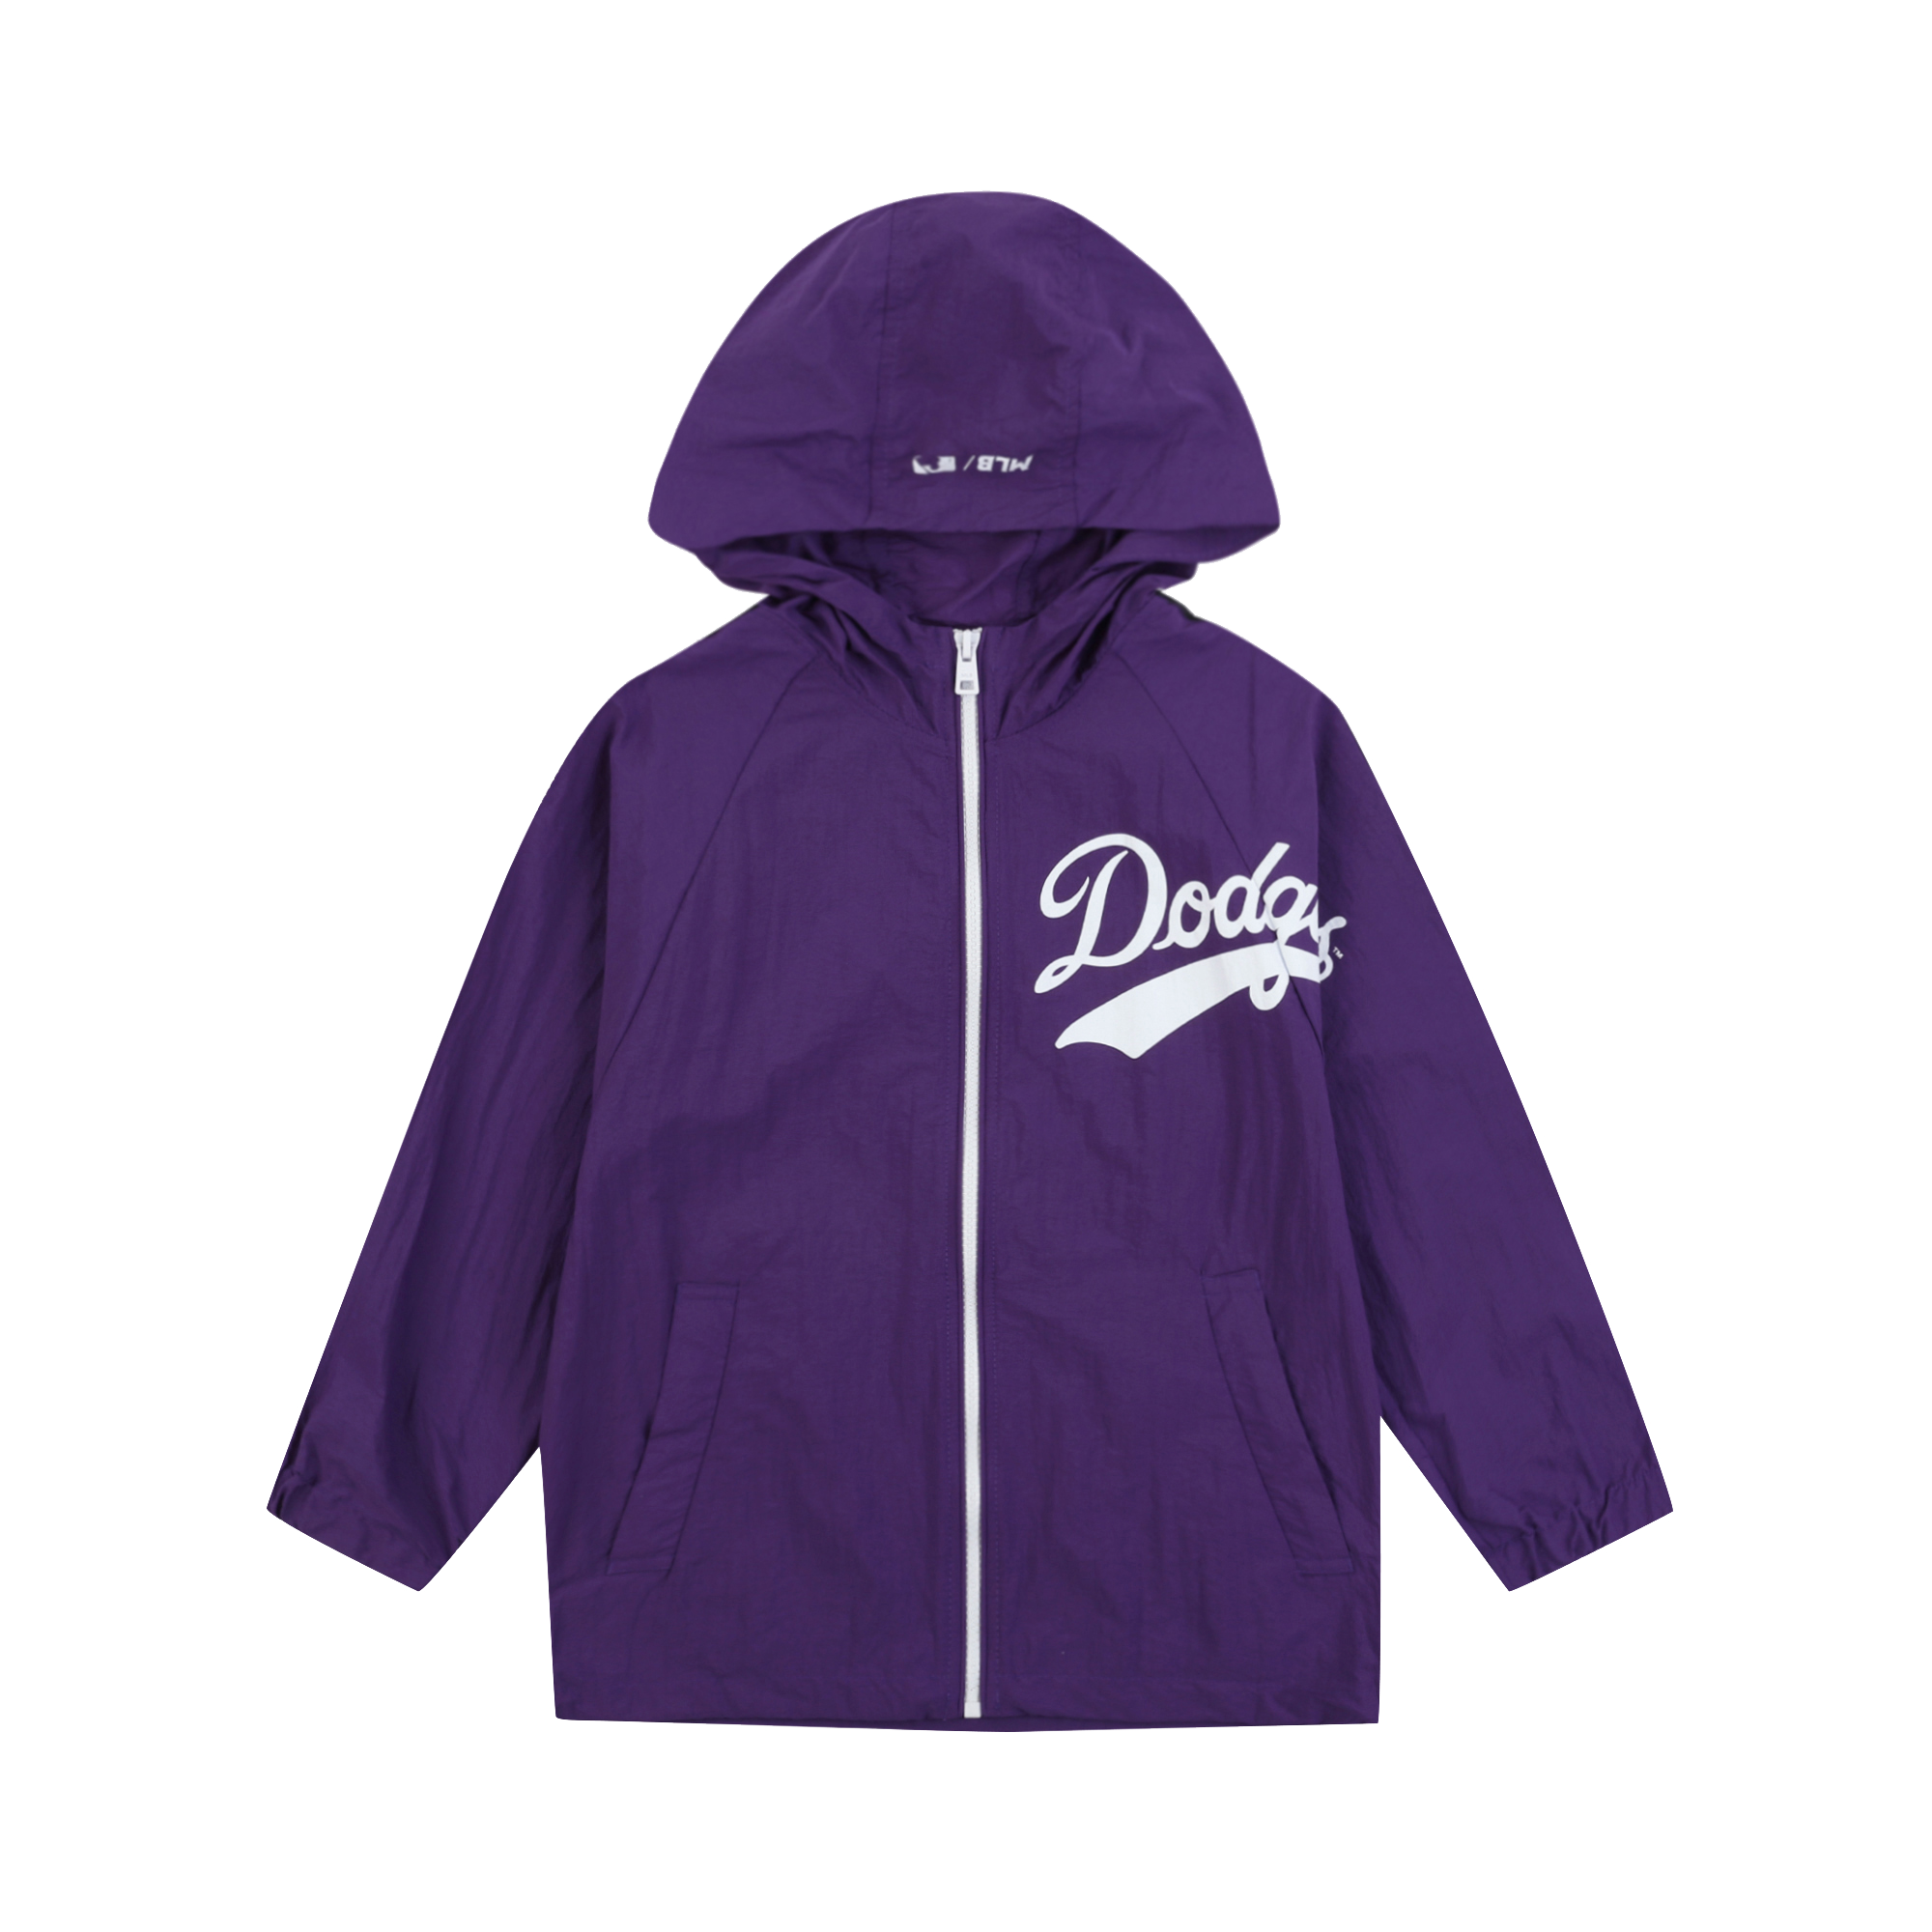 LA DODGERS CURVE BALL WINDBREAKER